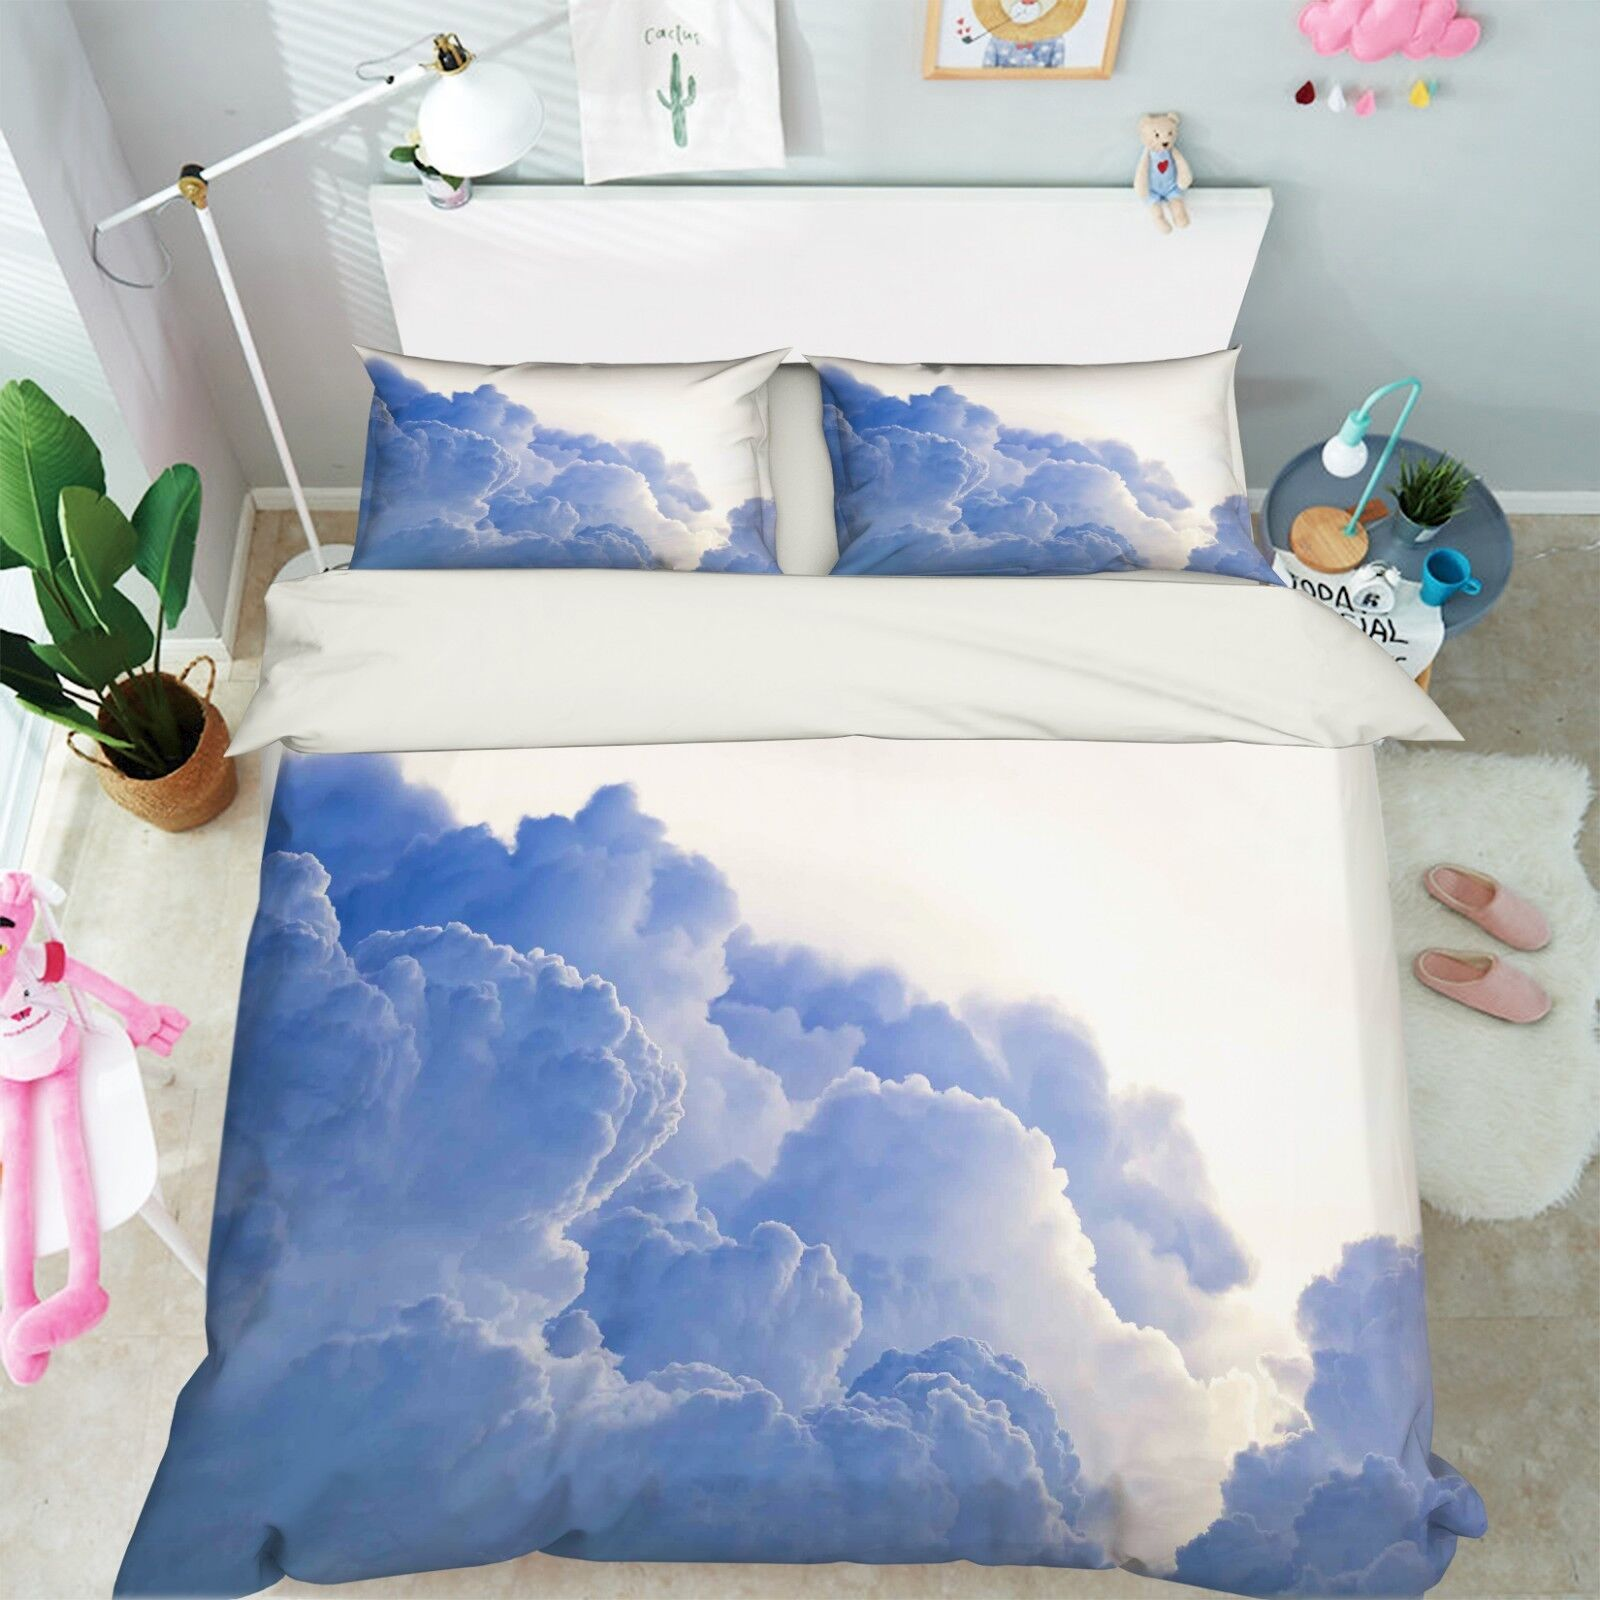 3D Cloud Pattern 883 Bed Pillowcases Quilt Duvet Cover Set Single Queen King CA